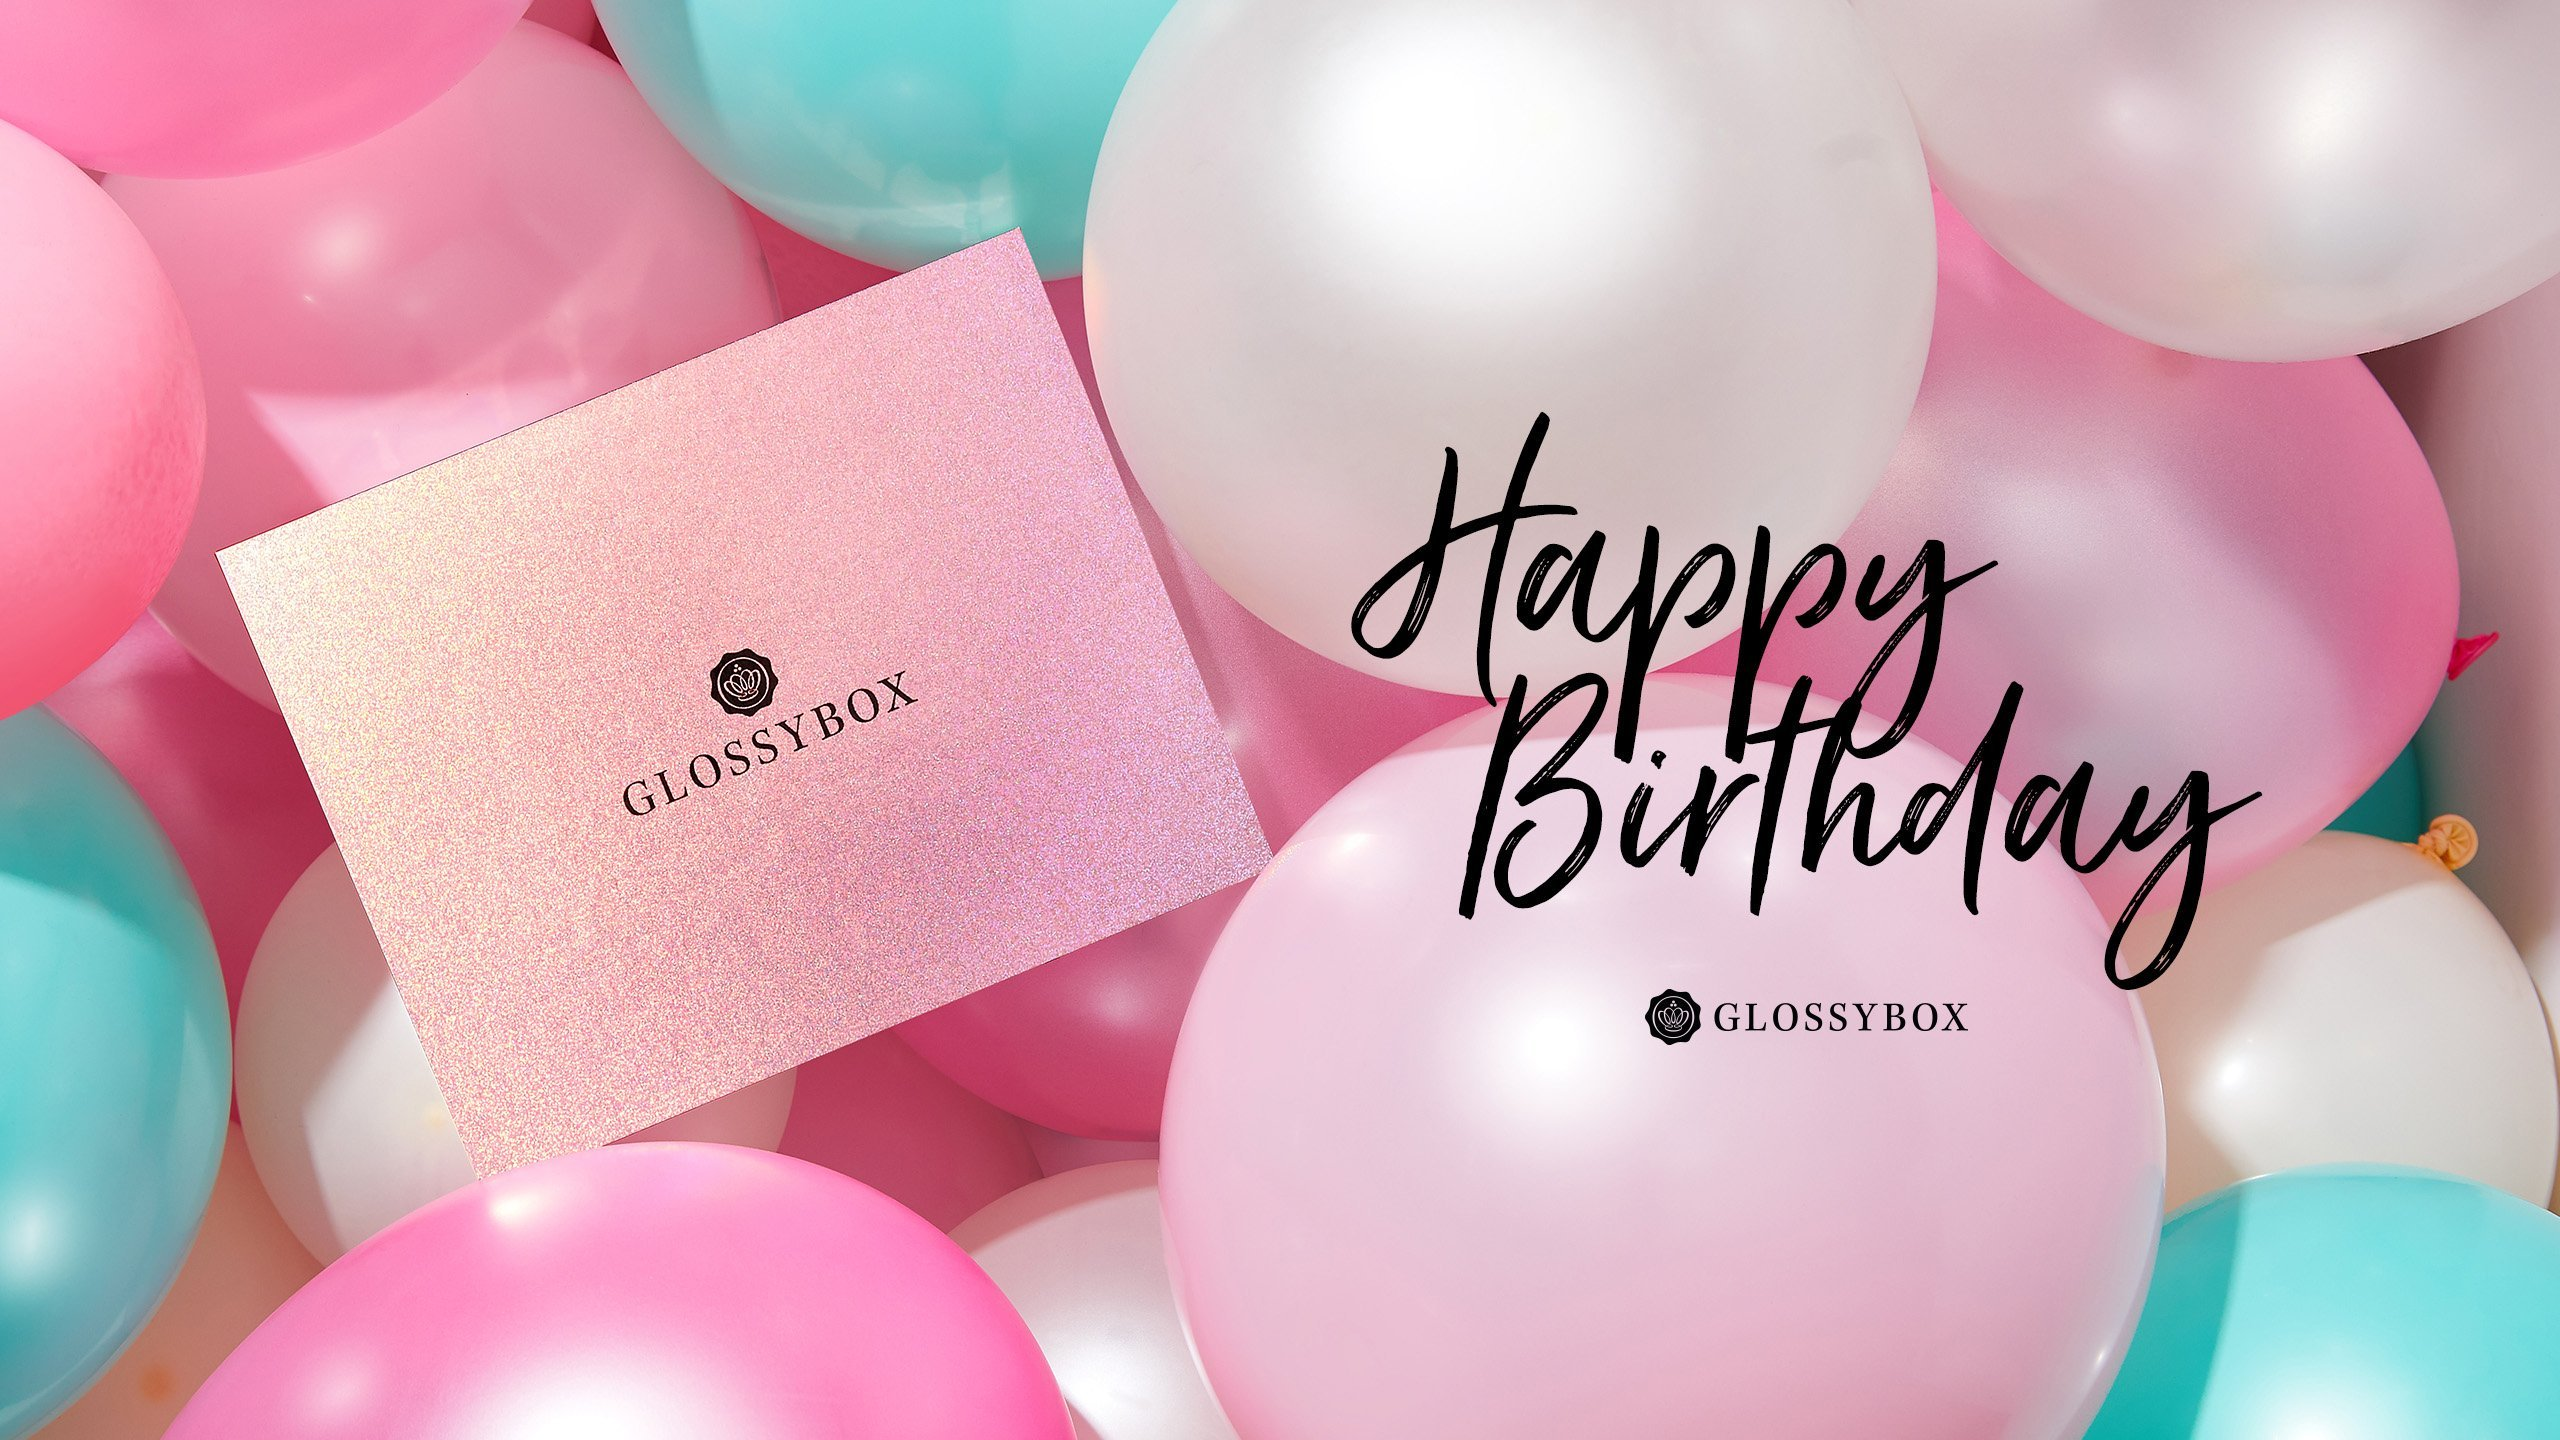 Les wallpapers d'août – Happy birthday Glossybox!